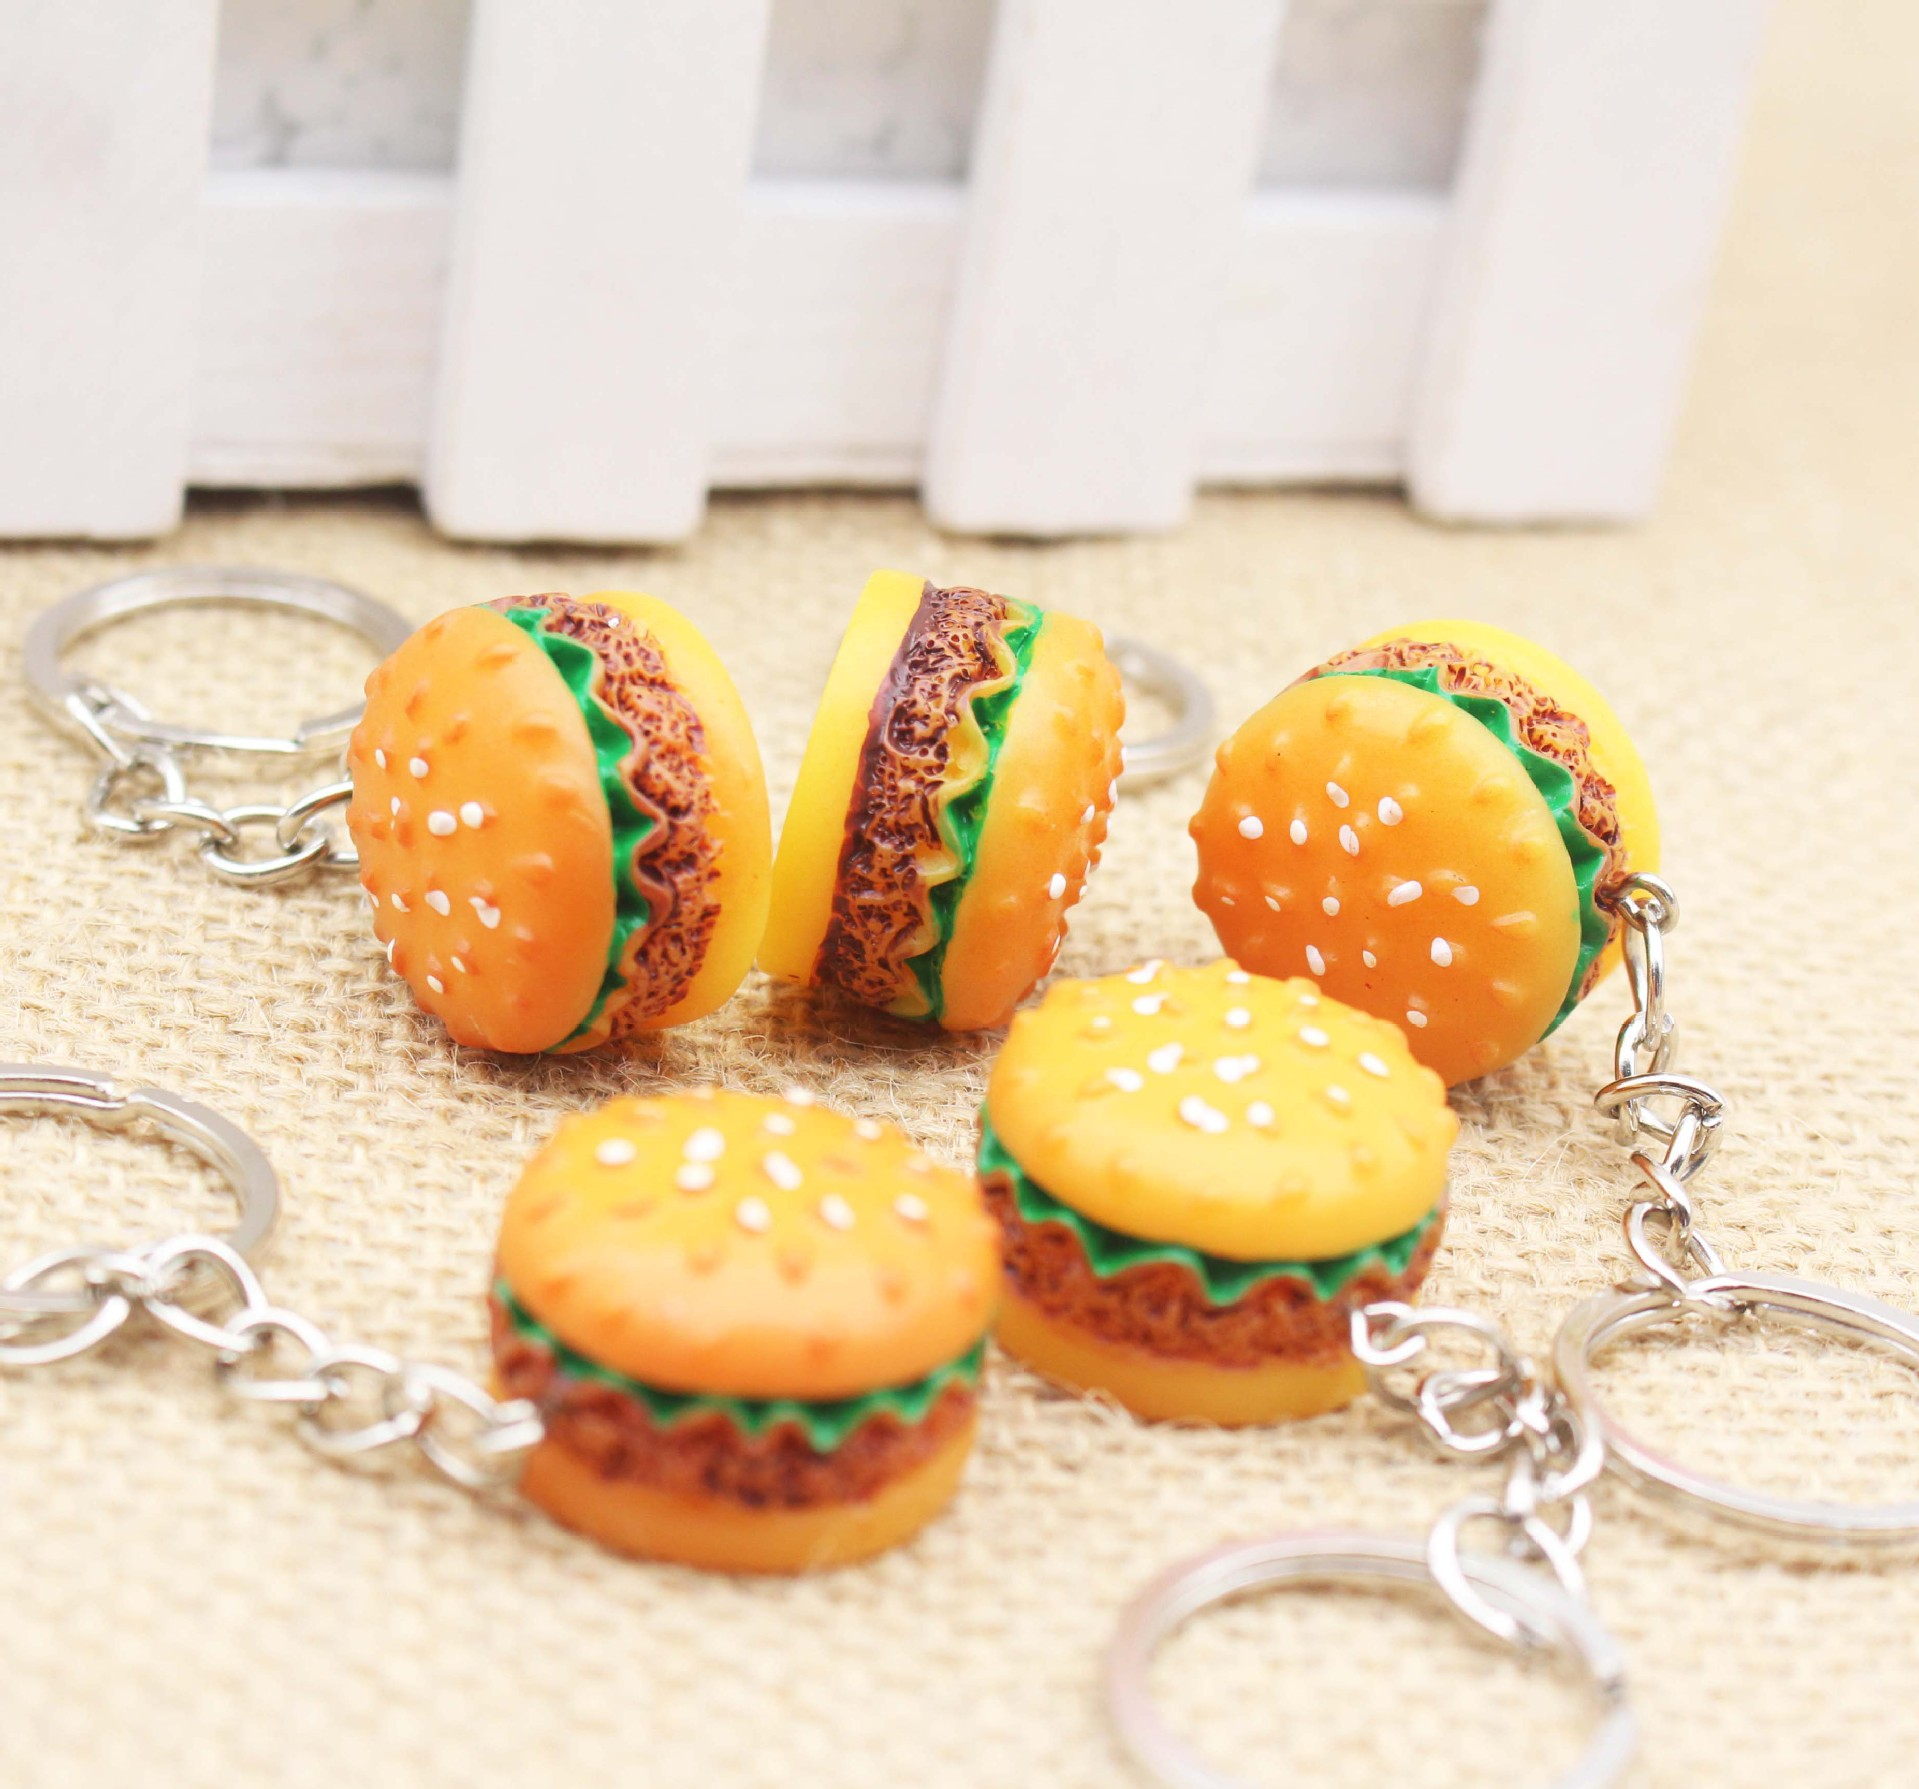 3PCS / Lot Novel Hamburger KeyRings Pendants Gifts/ Bags Wallet Accessories Carro  Phone Kids Cute Diy Purse Hardware novel 3